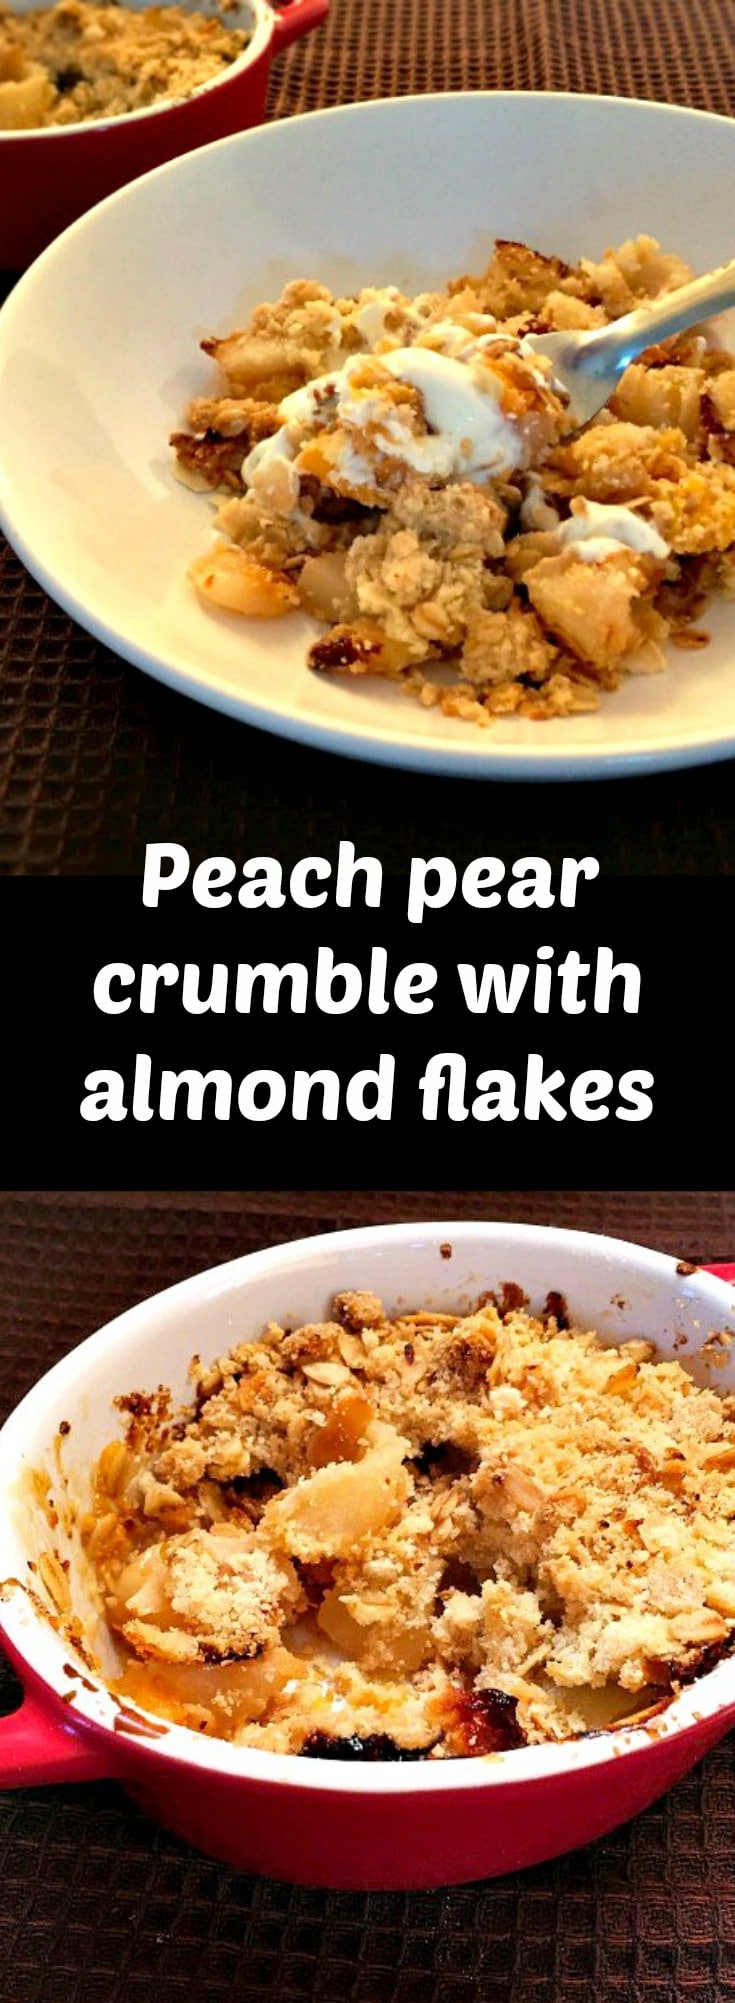 Peach pear crumble with almond flakes, a scrumptious British dessert that brings together soft juicy fruit and a crunchy almond oat topping. Beautufully moist and flavourful, this crumble is a family favourite dessert.